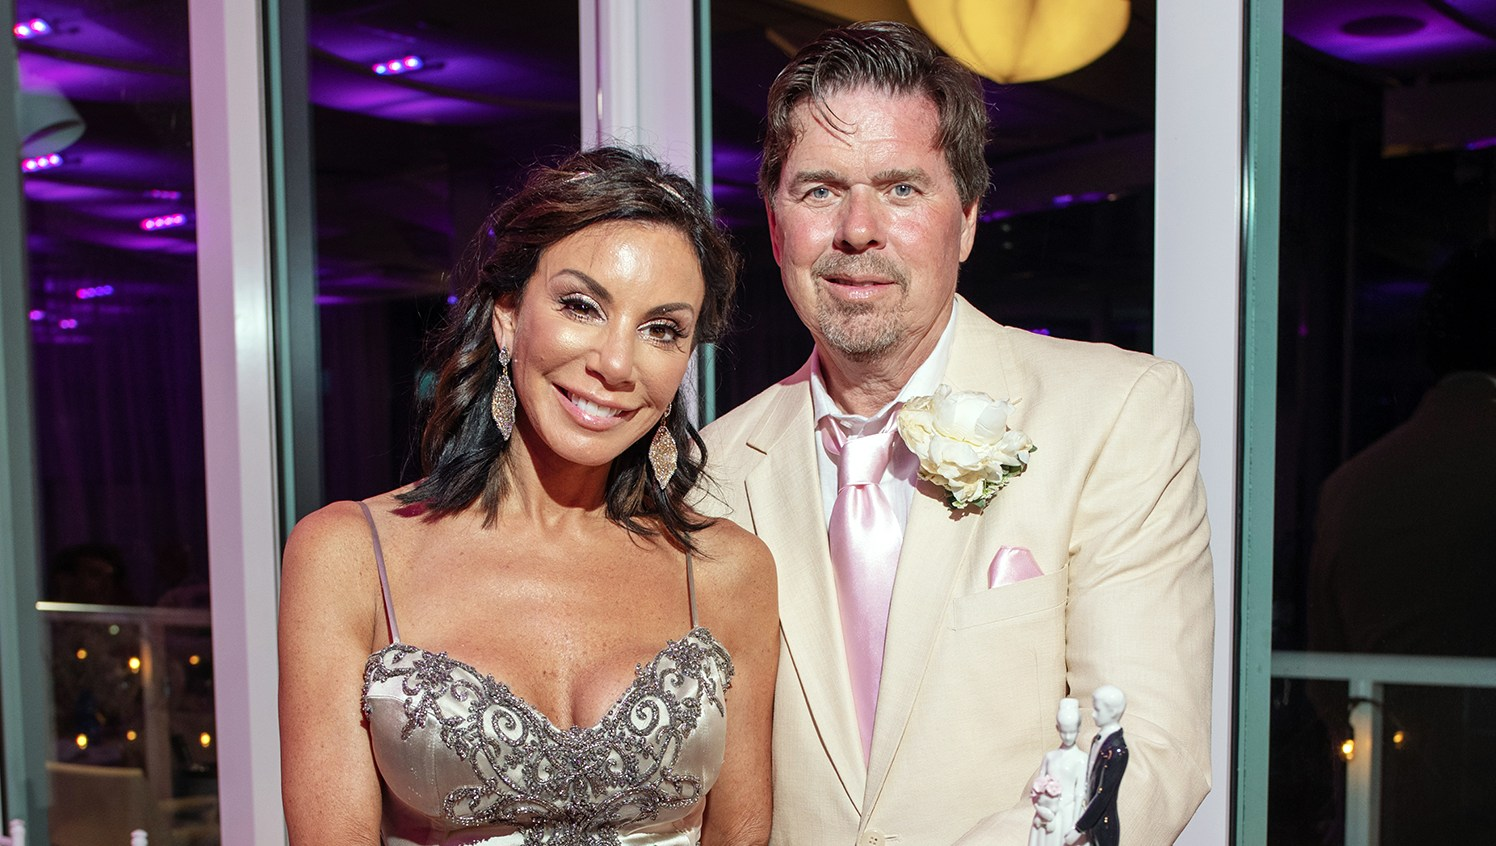 Marty Caffrey Danielle Staub Drinking Fame Accusations